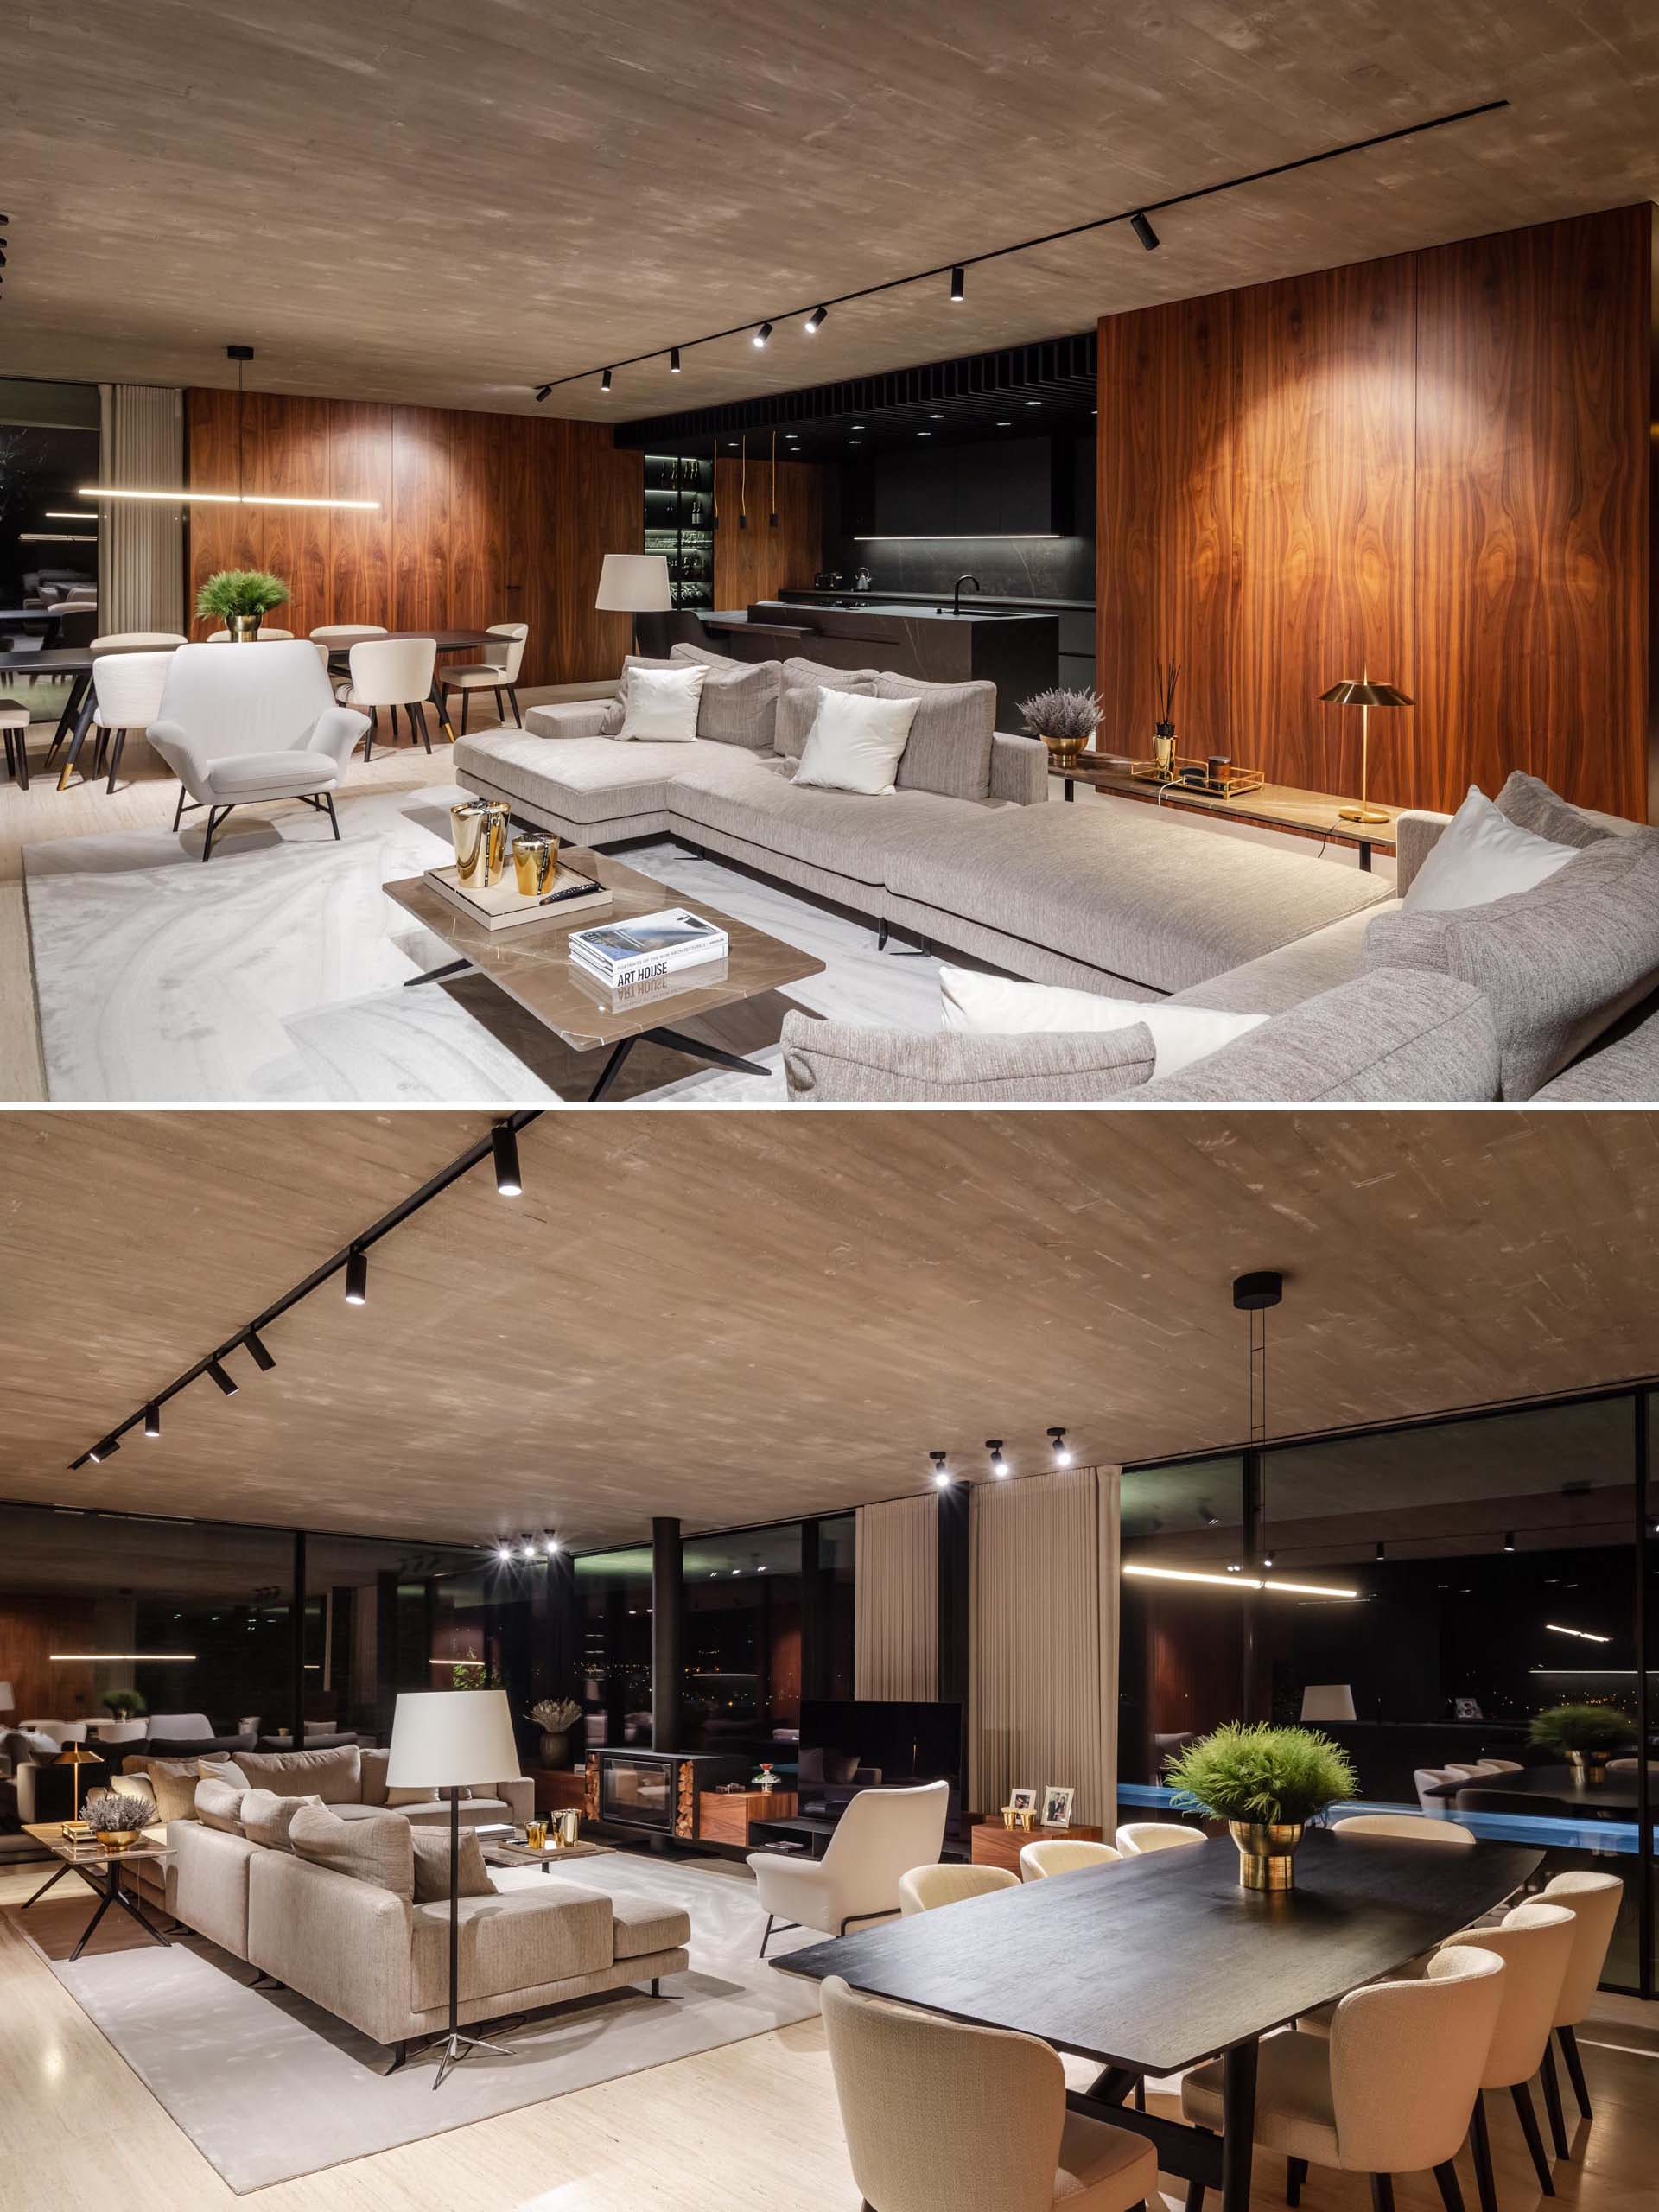 At night, the  interior lighting in this modern home showcases the wood wall accents and other design elements, like the television and fireplace.